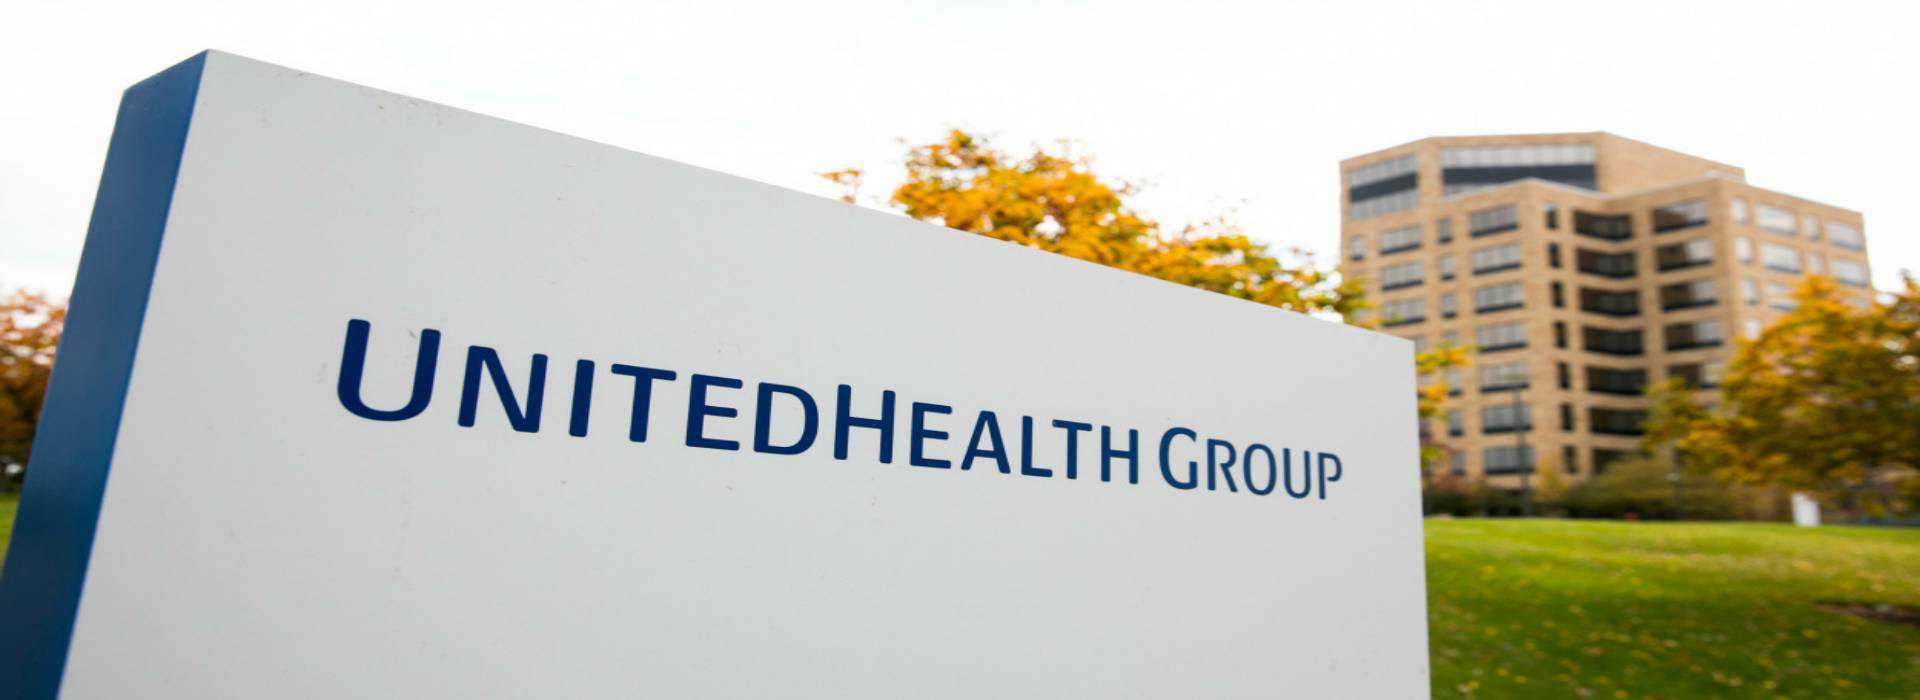 United Health Group Customer Service Number, Head Office Address ...